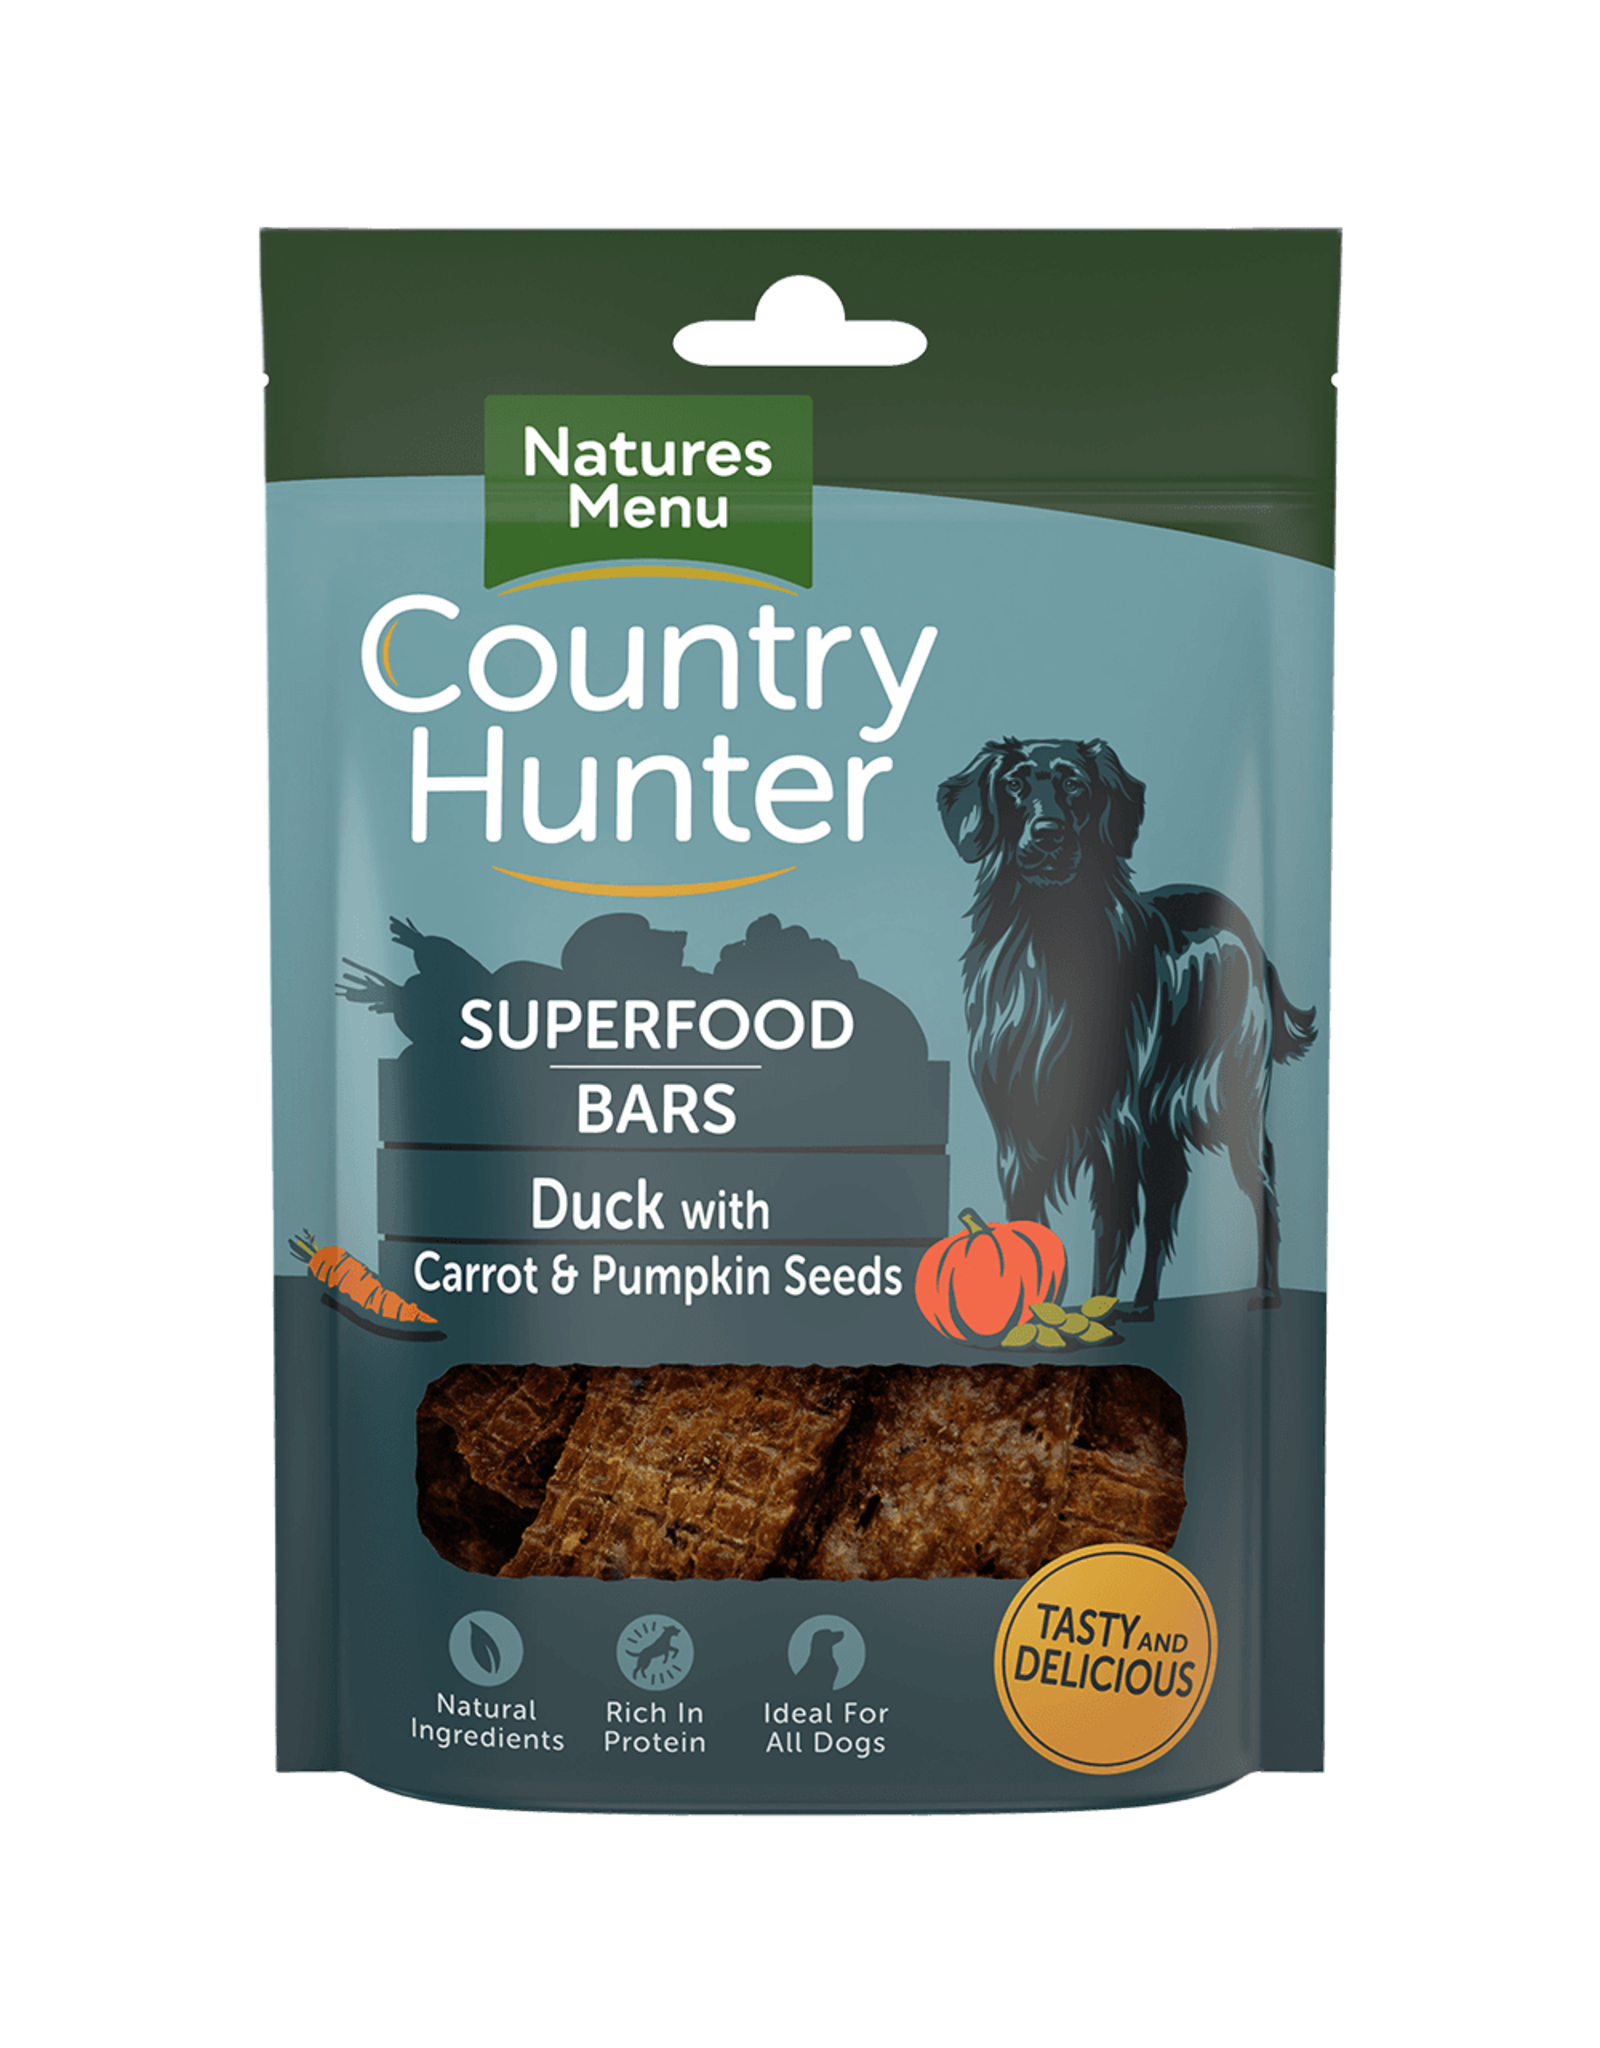 natures menu Country Hunter Superfood Bar Duck with Carrot & Pumpkin Seeds Dog Treat, 100g